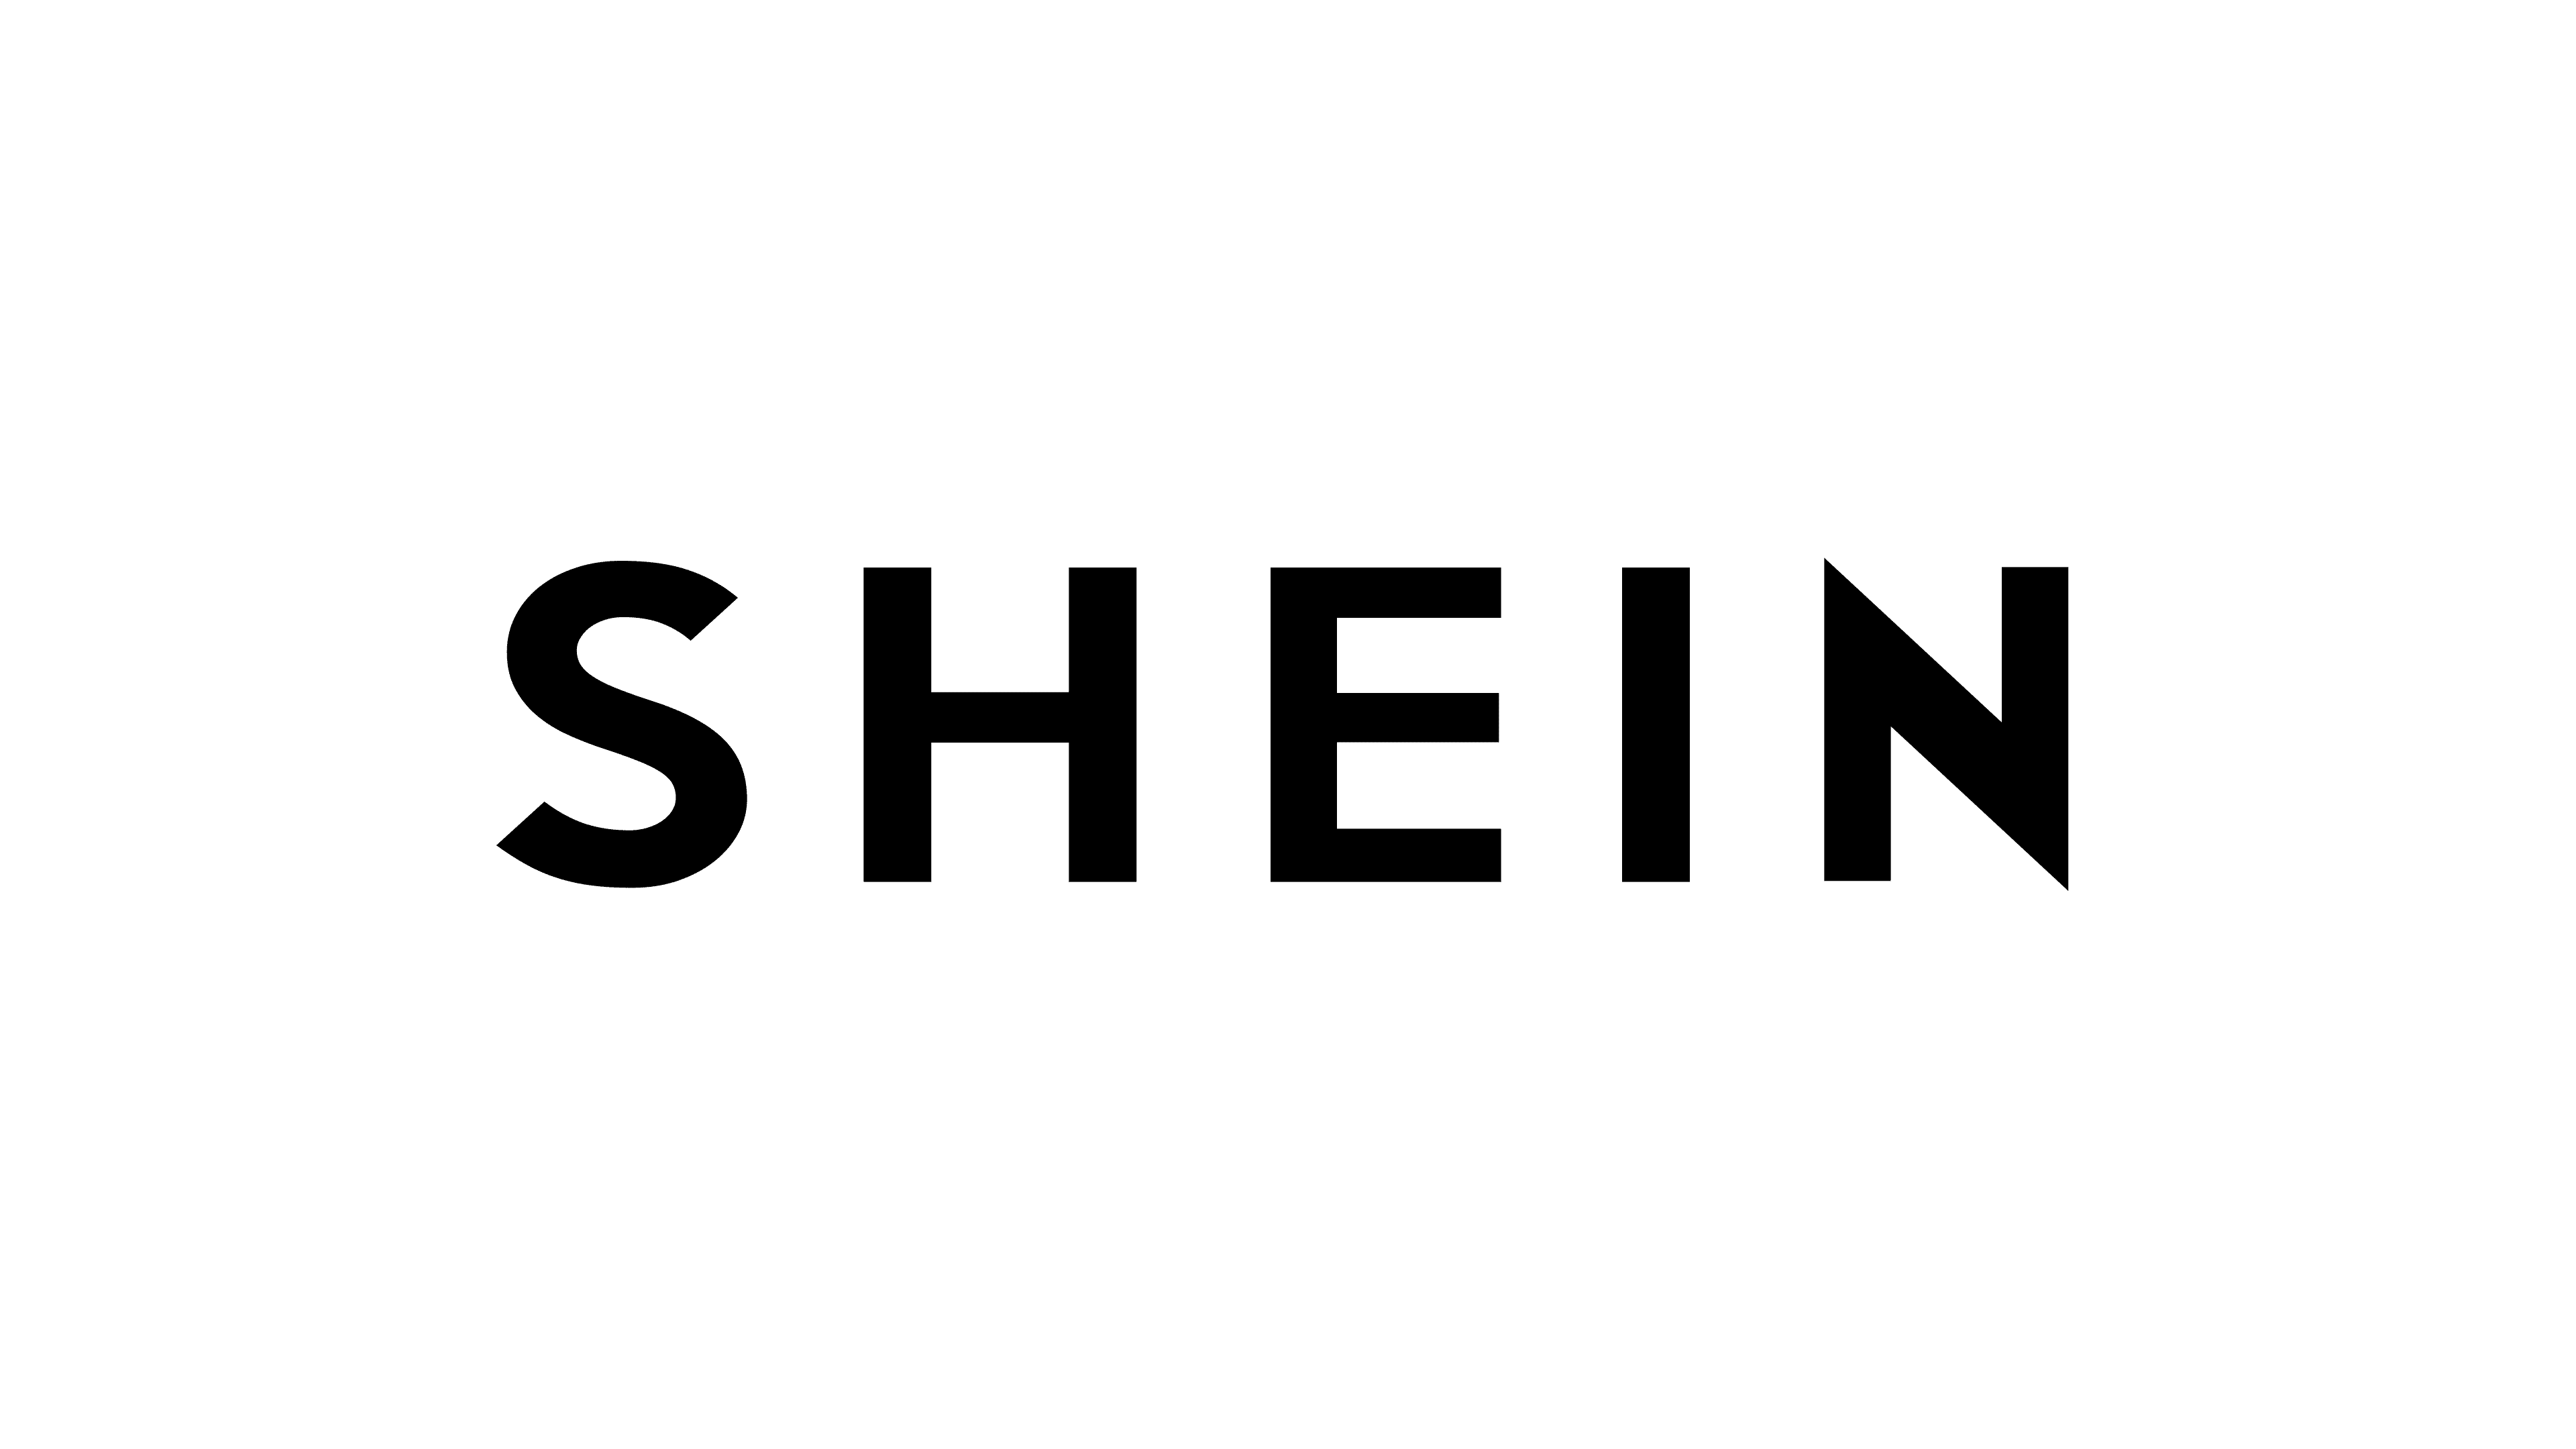 Shein Leading Shopping App Based On Combined Android and iOS Downloads – 17.52M in July 2021